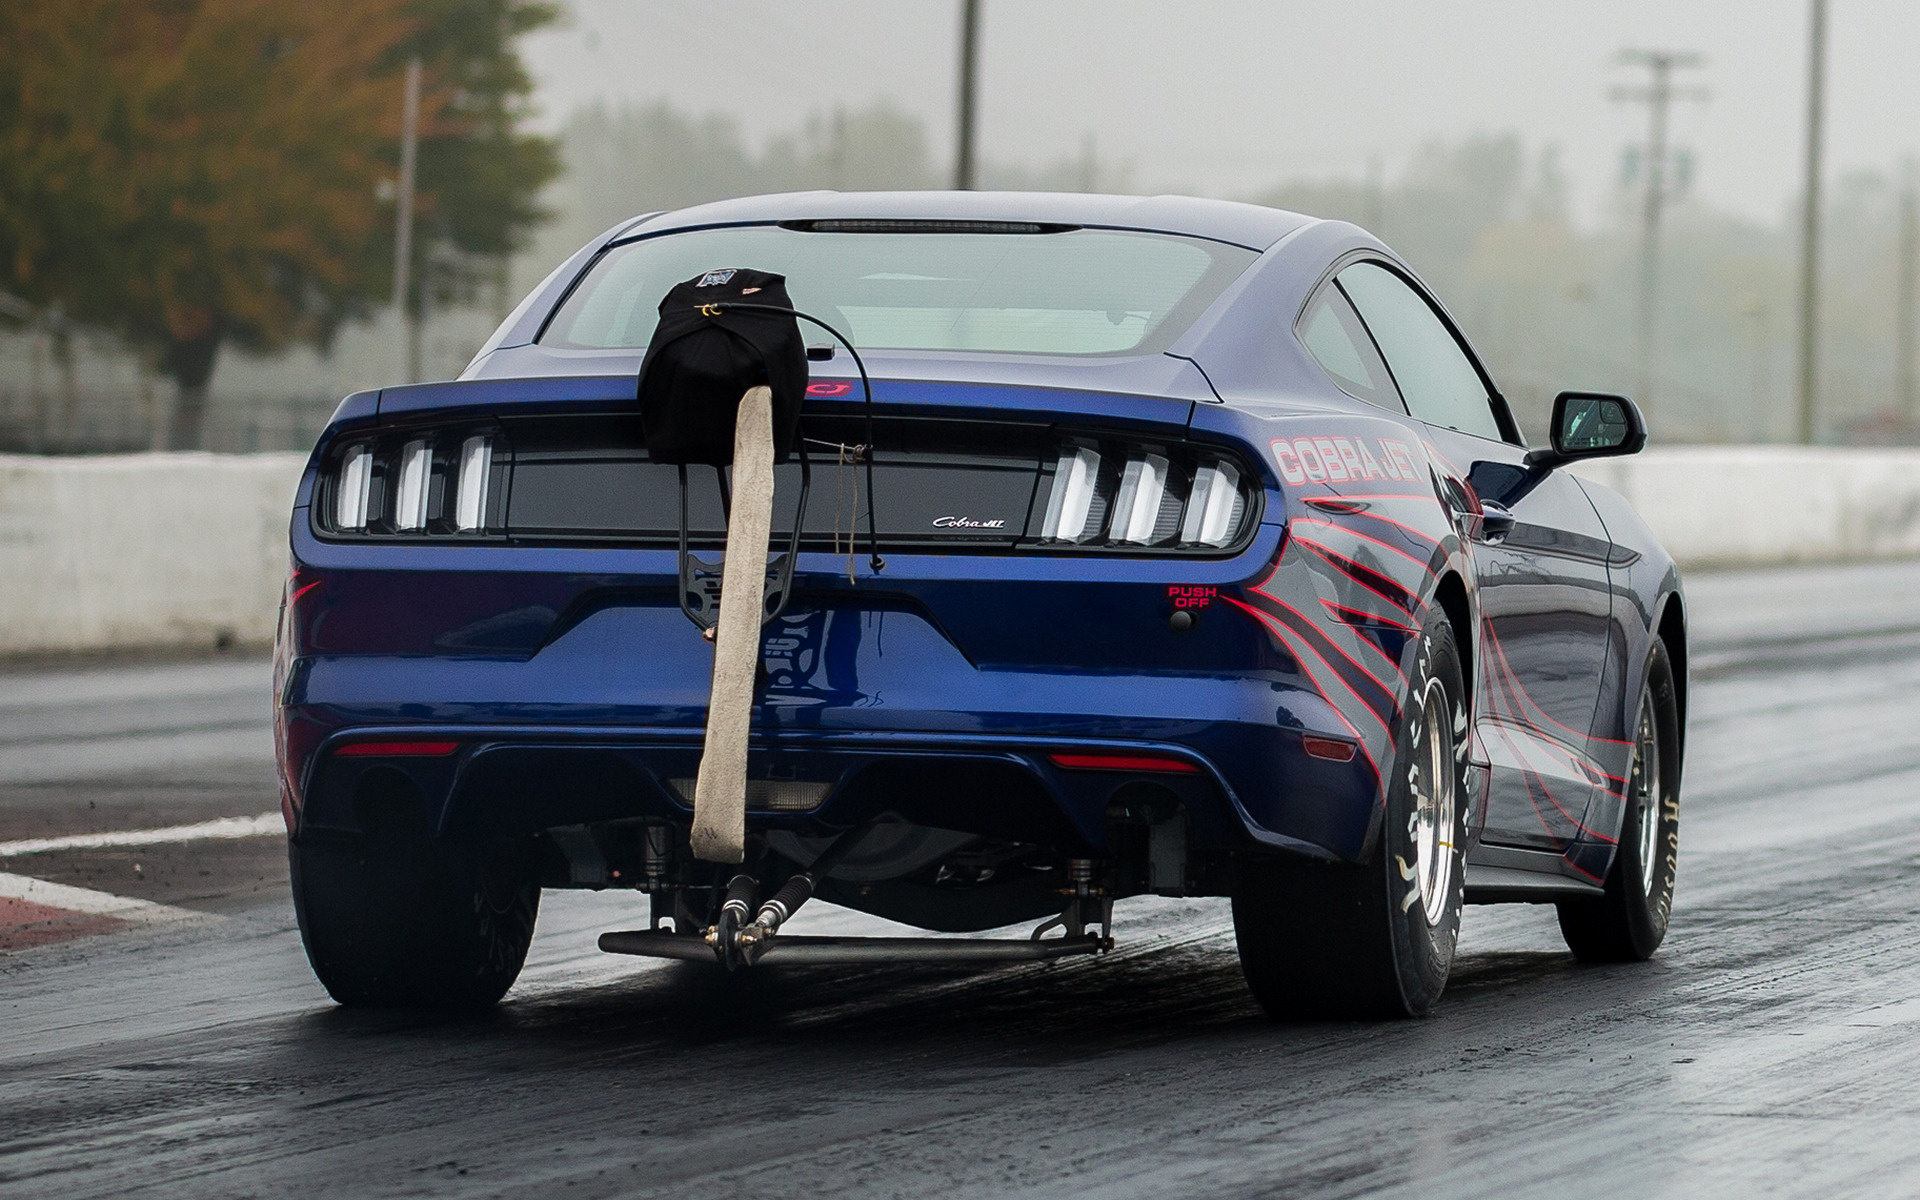 Ford Mustang Cobra Jet Drag Car (2016) Wallpapers And HD